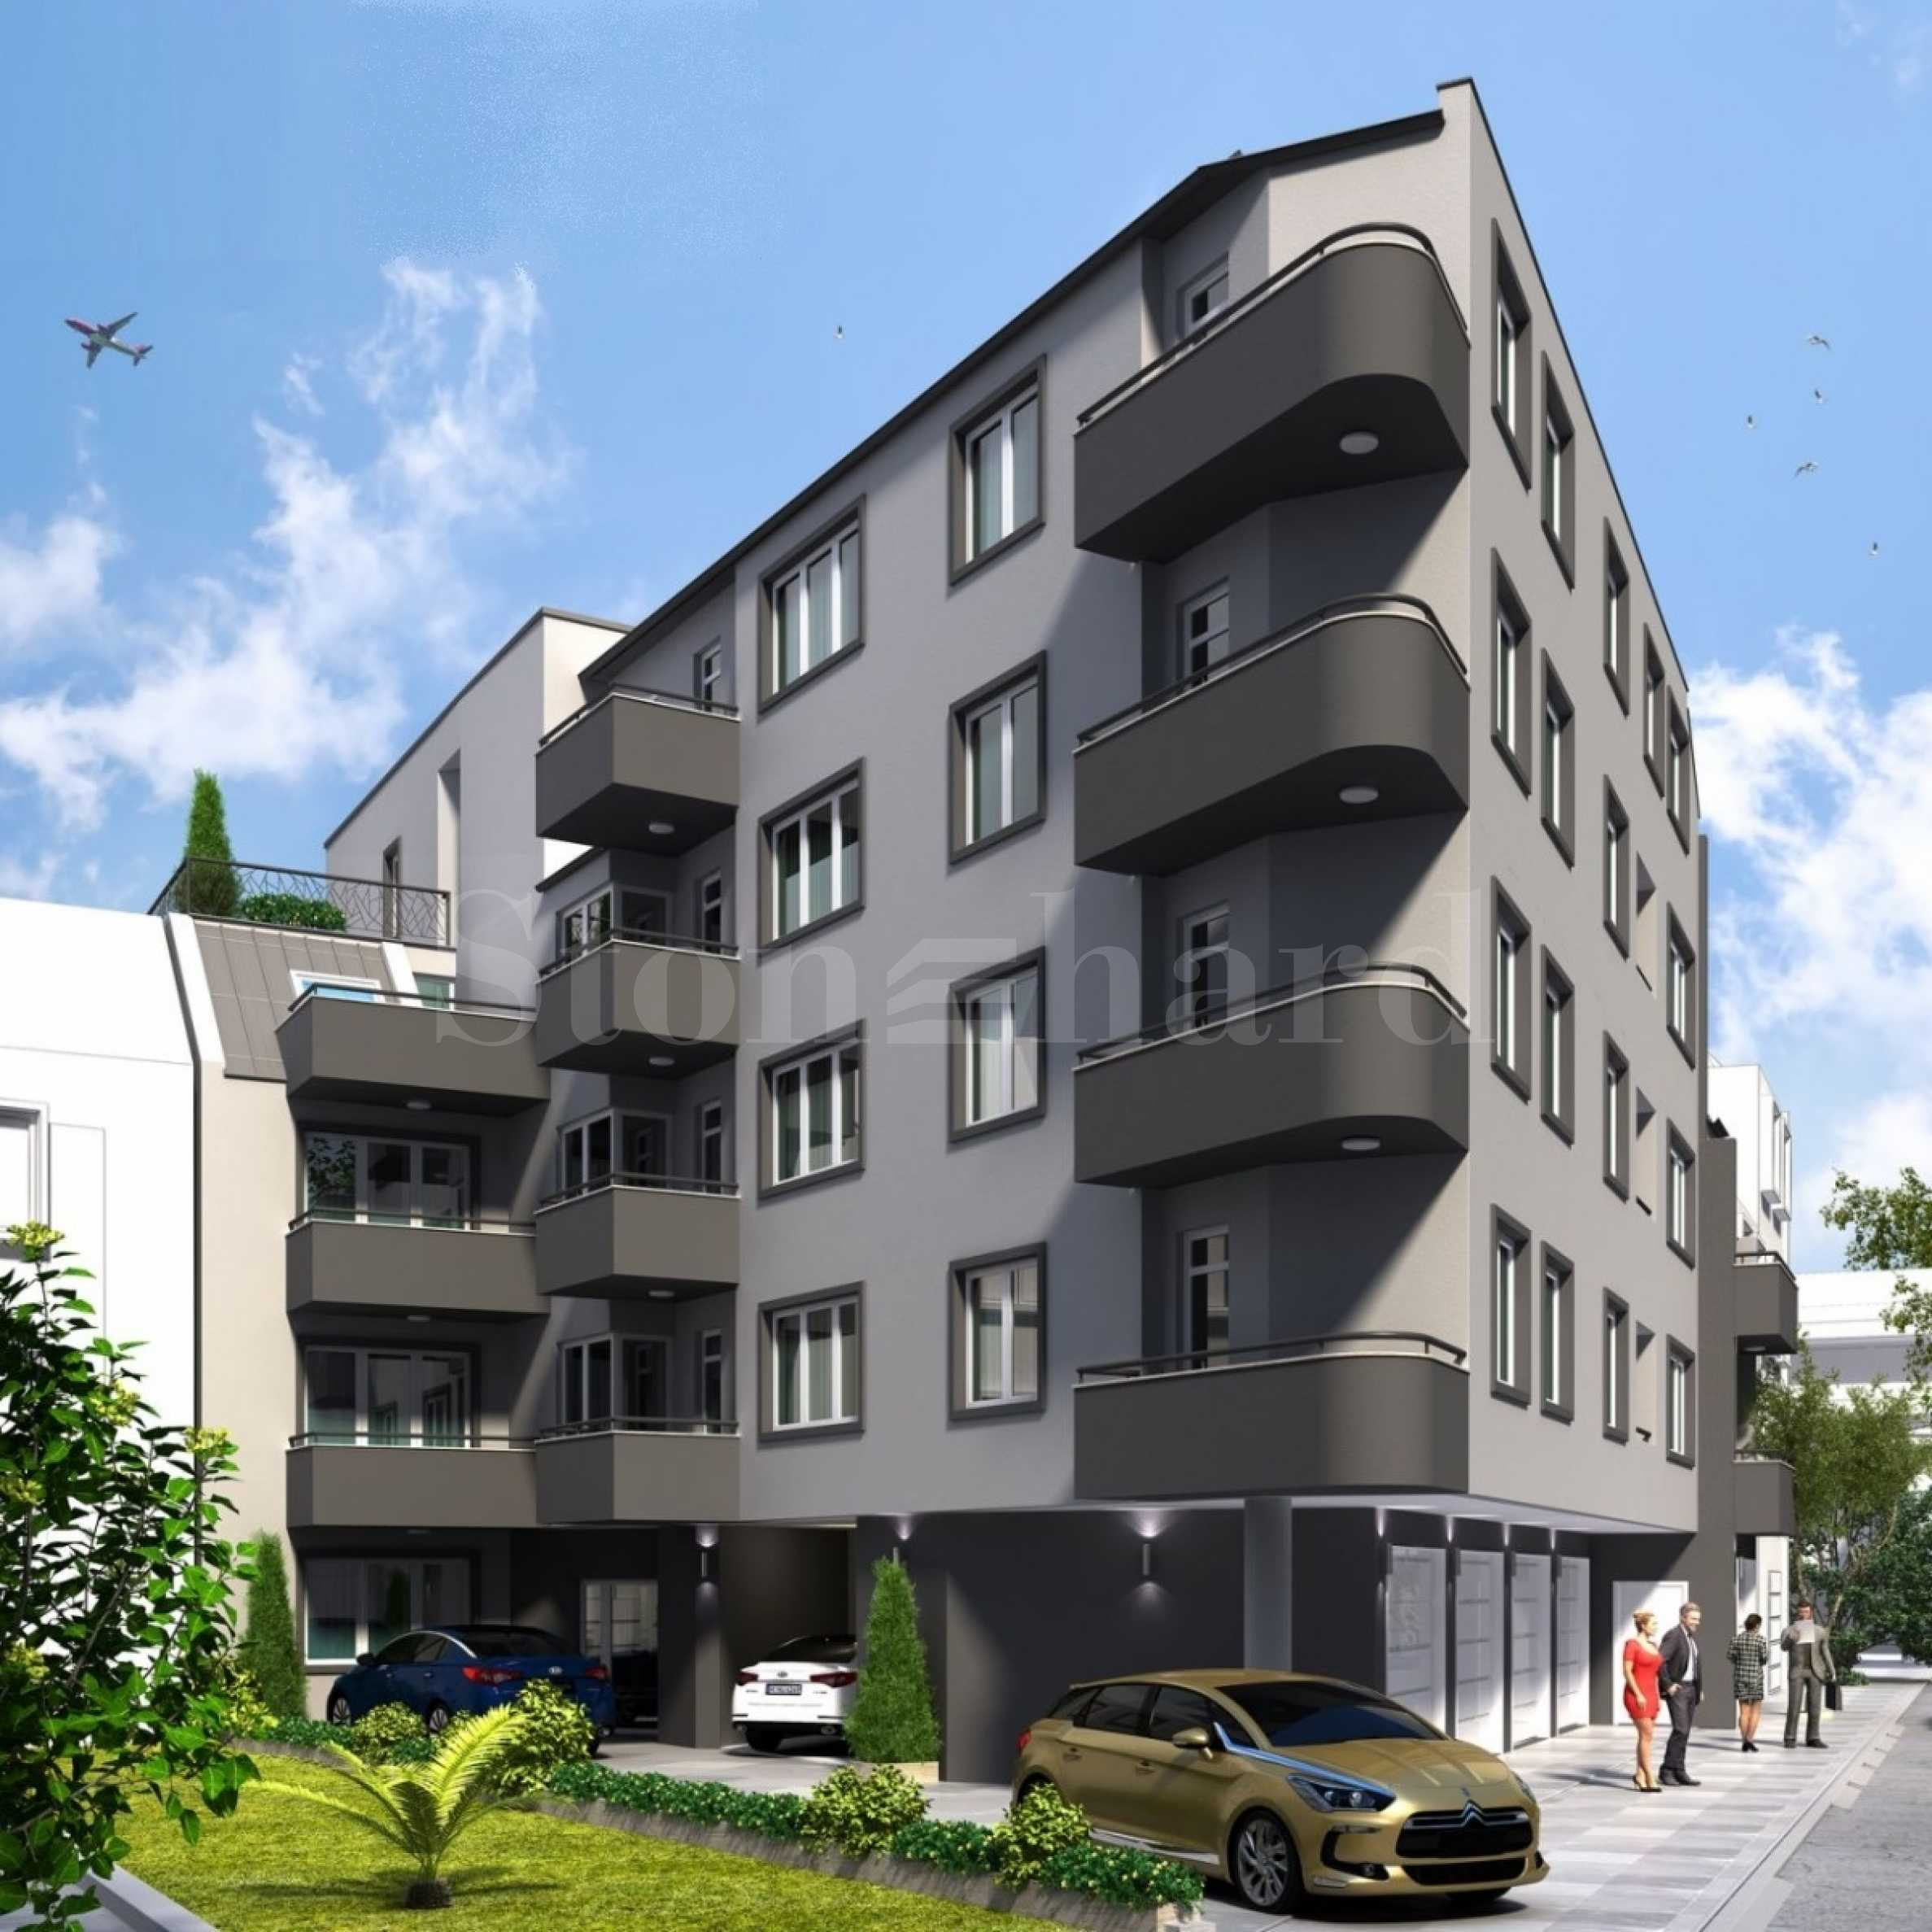 Apartments in a modern residential building in Varna1 - Stonehard